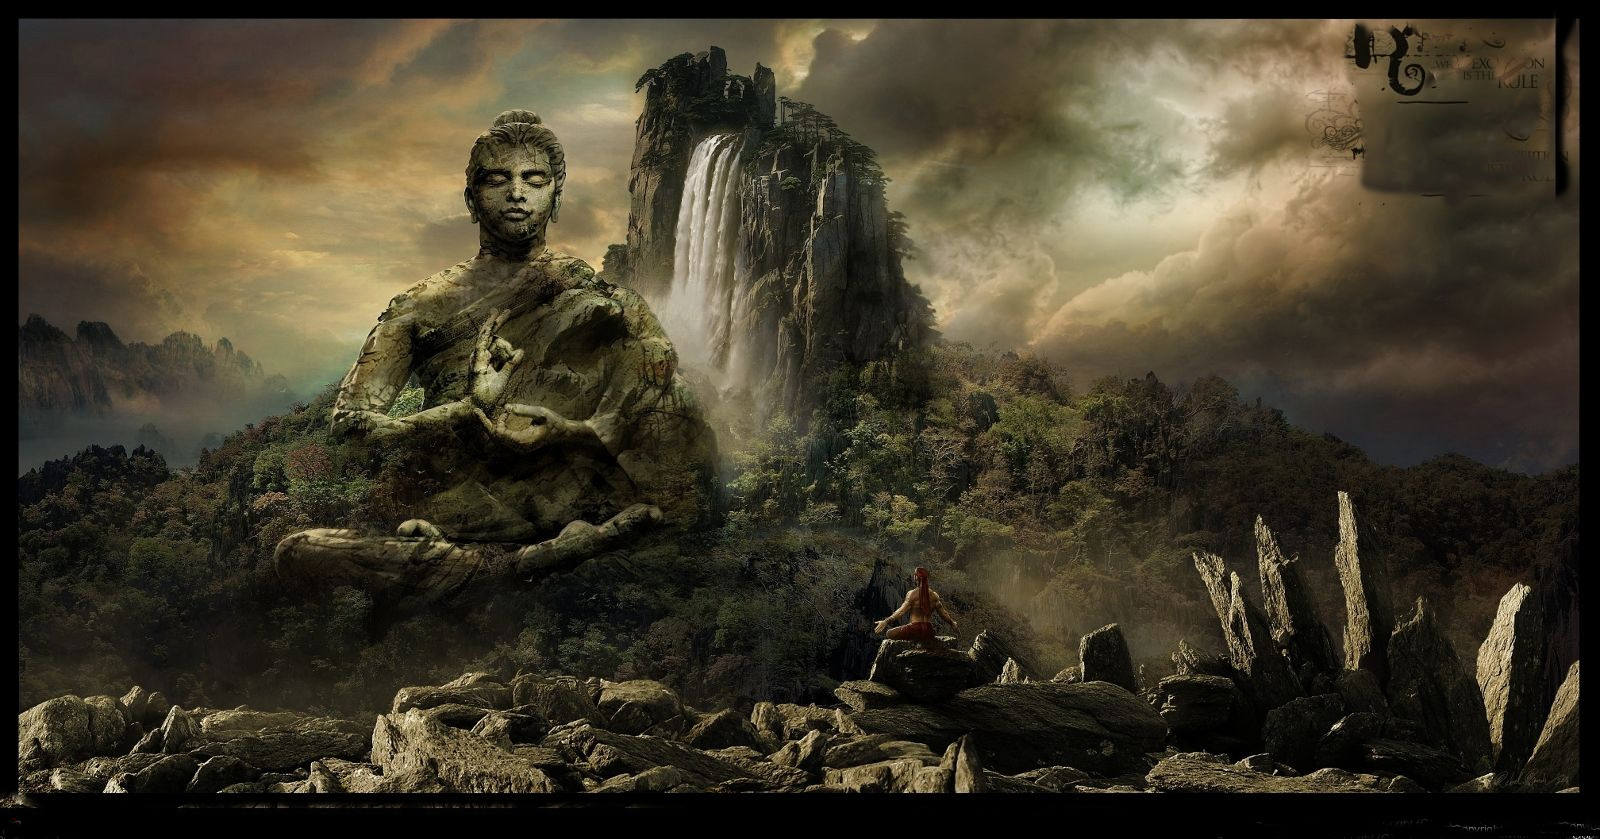 Buddha Wallpaper pictures HD waterfall mountain